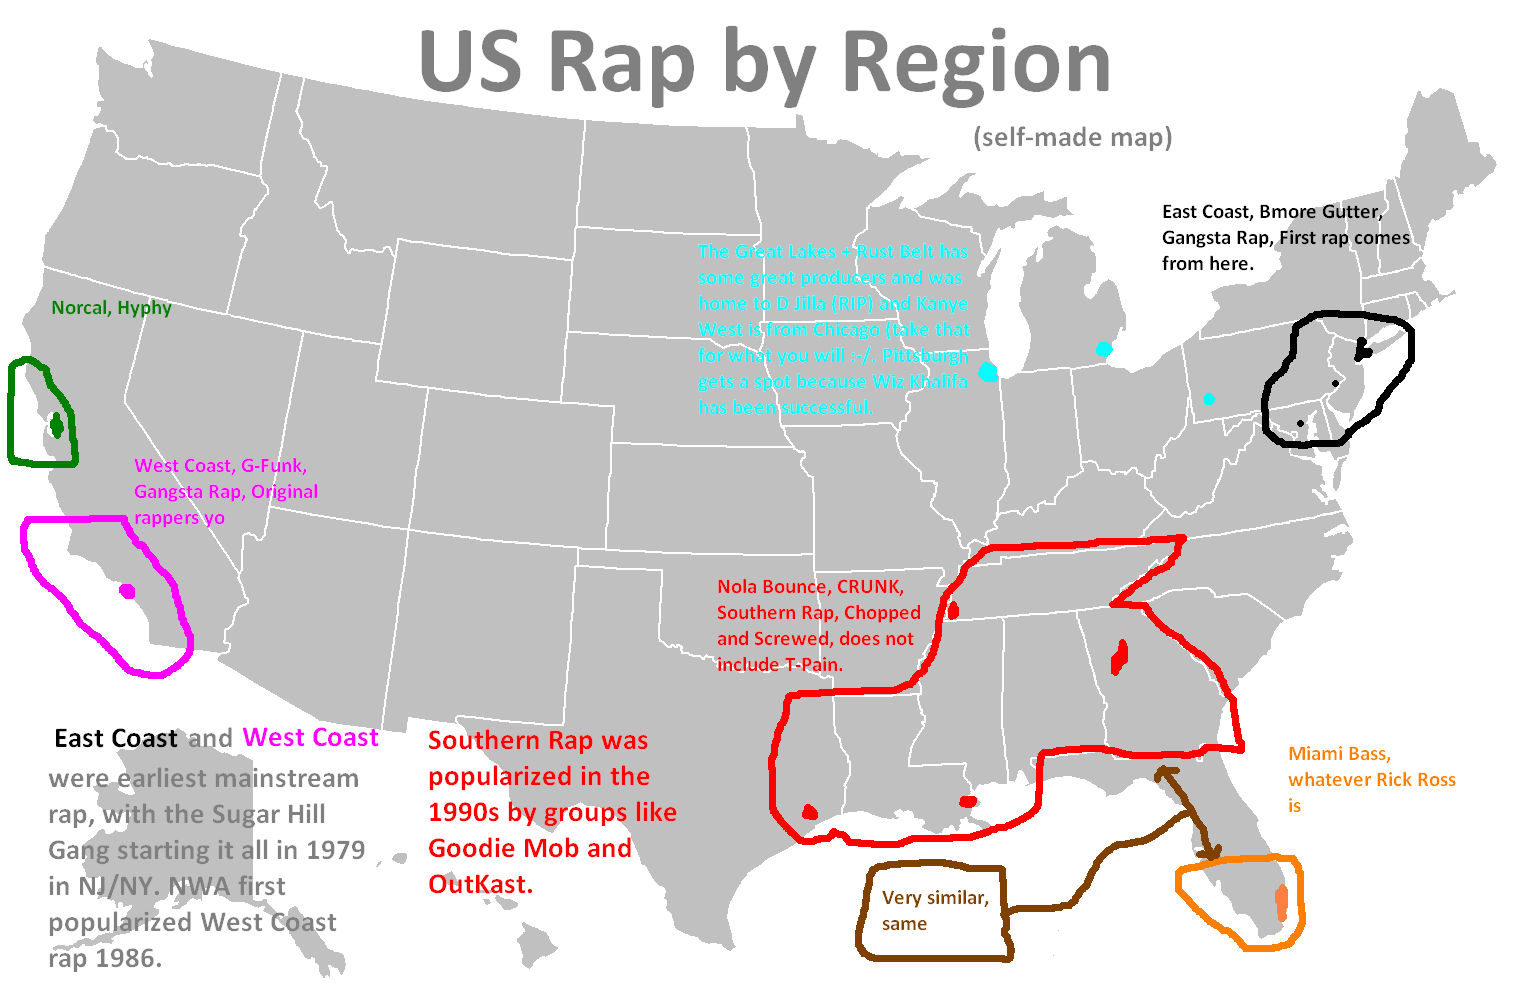 US Cultural Regions Rap And Hip Hop In The US Lees Lectern - Rap of the map of the us